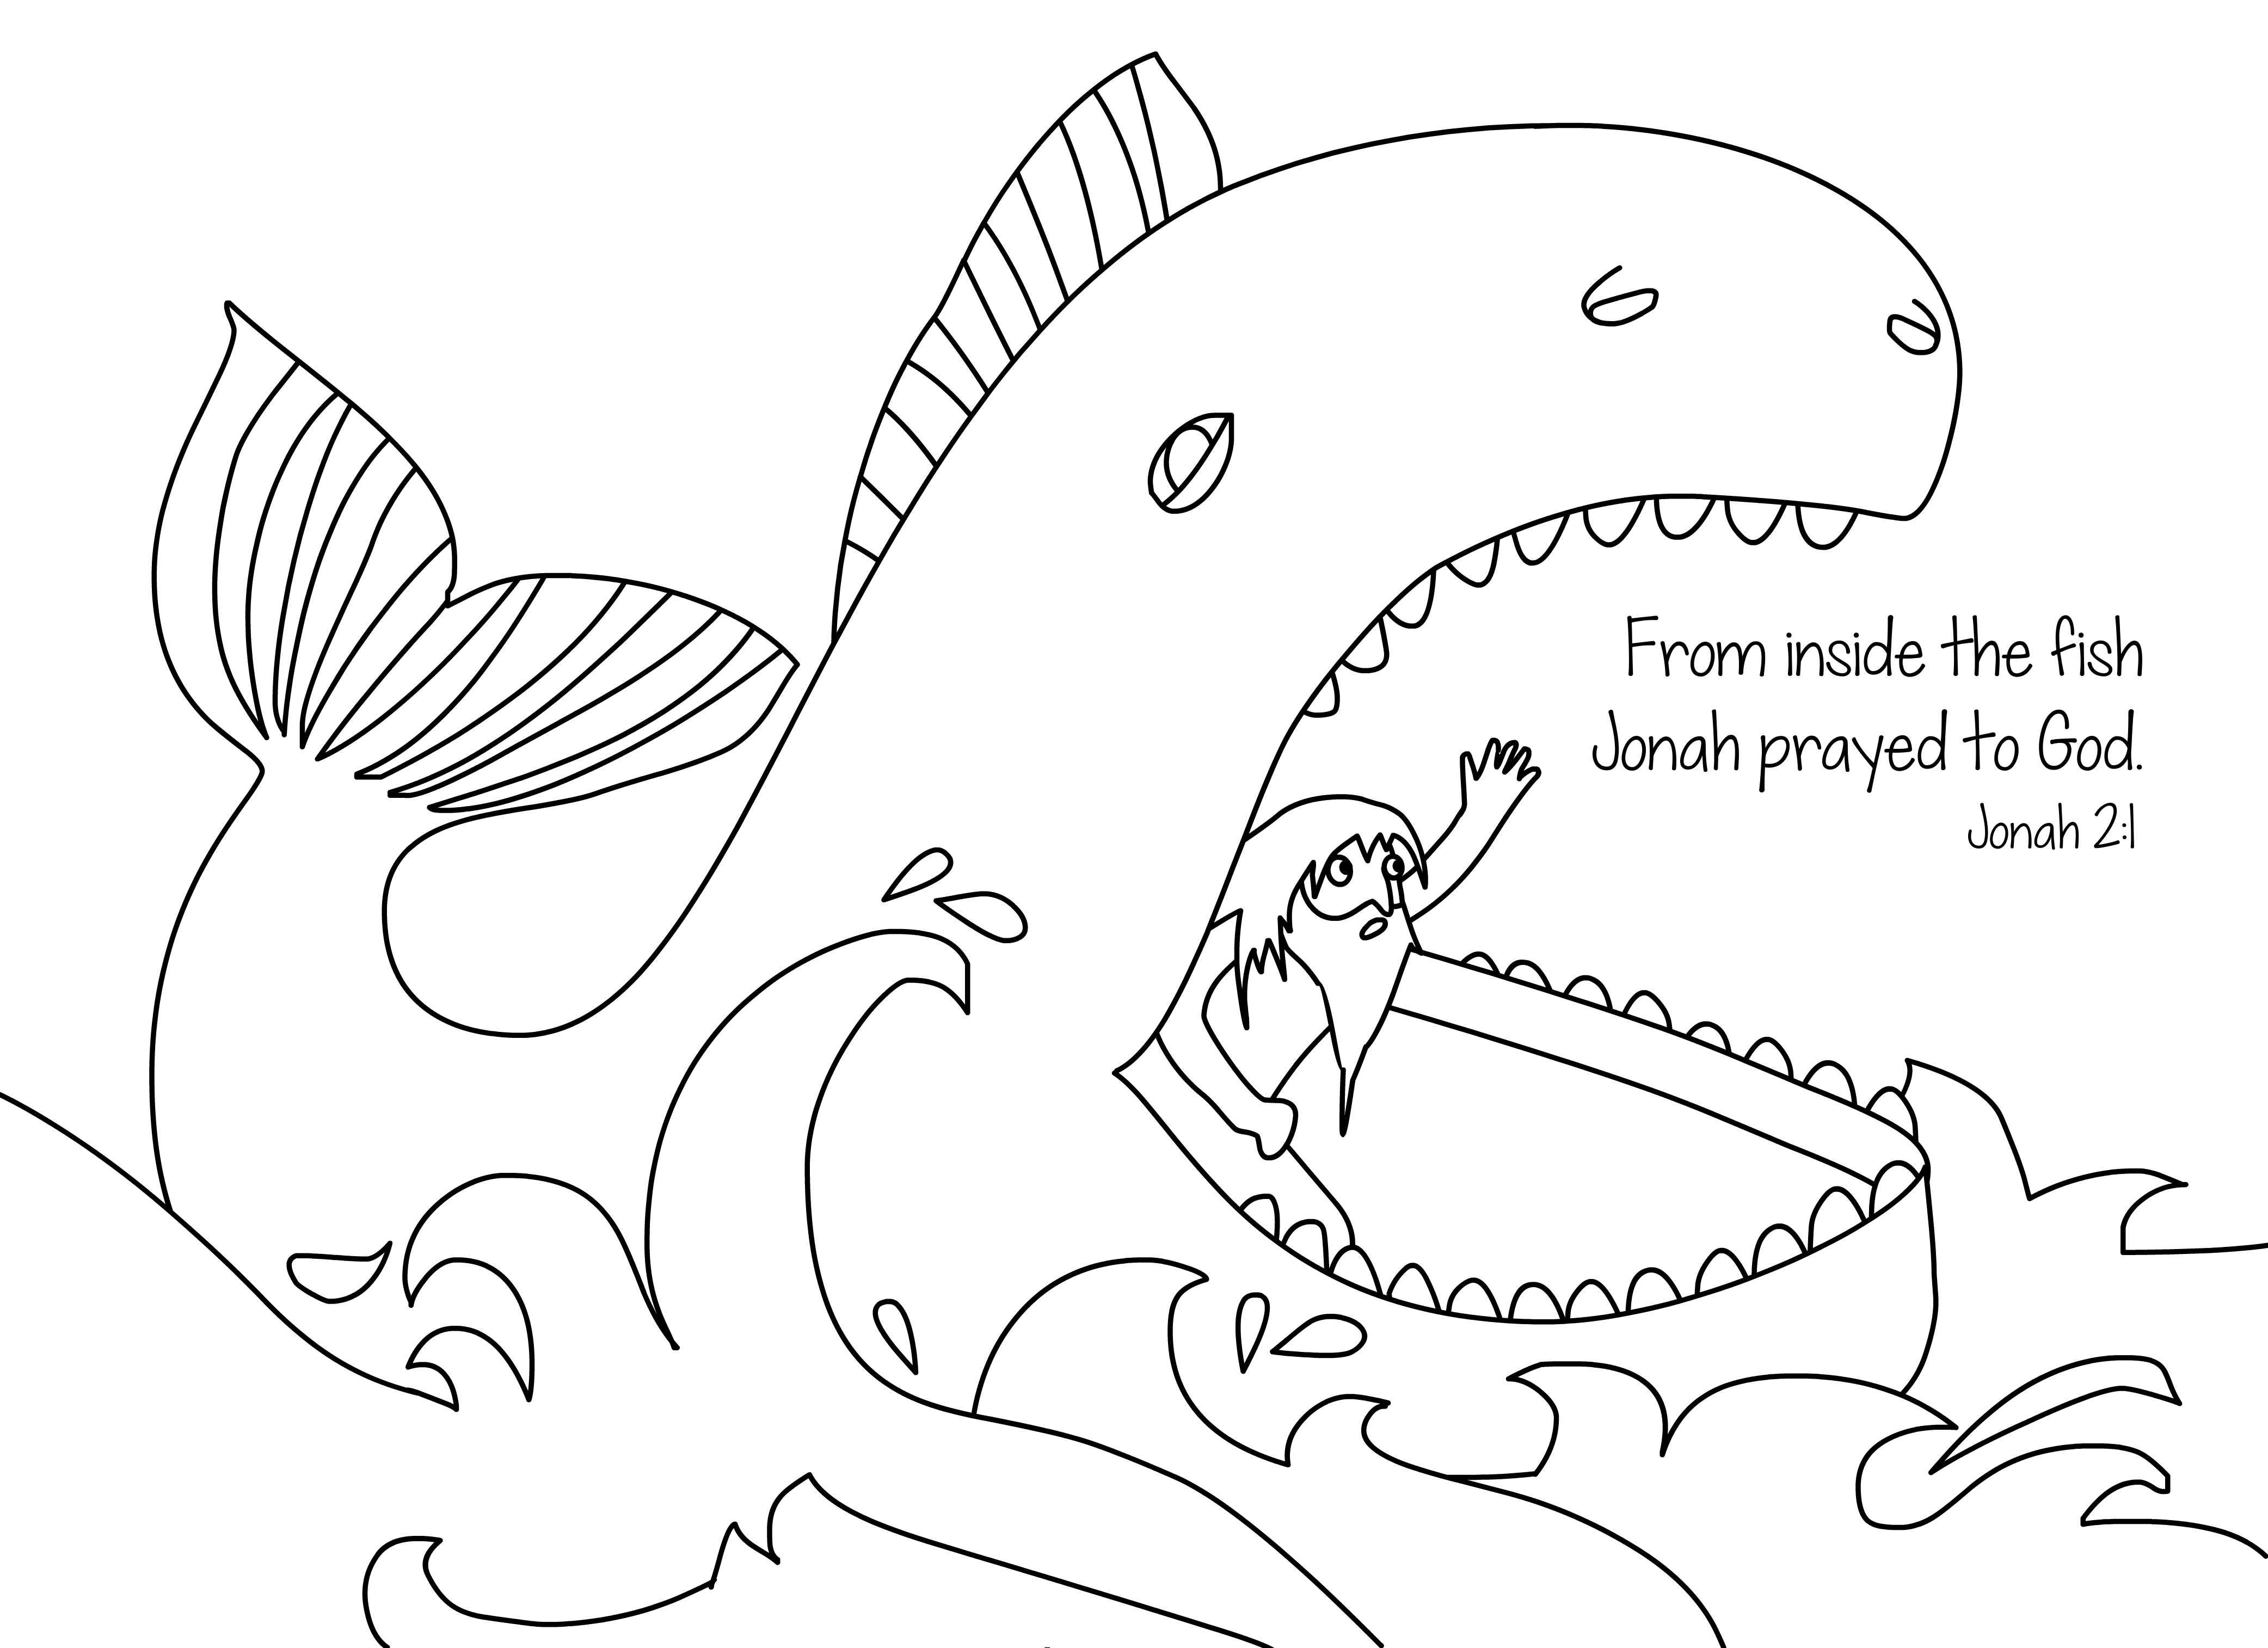 free printable bible coloring pages for children free printable bible coloring pages for kids pages free children coloring printable for bible